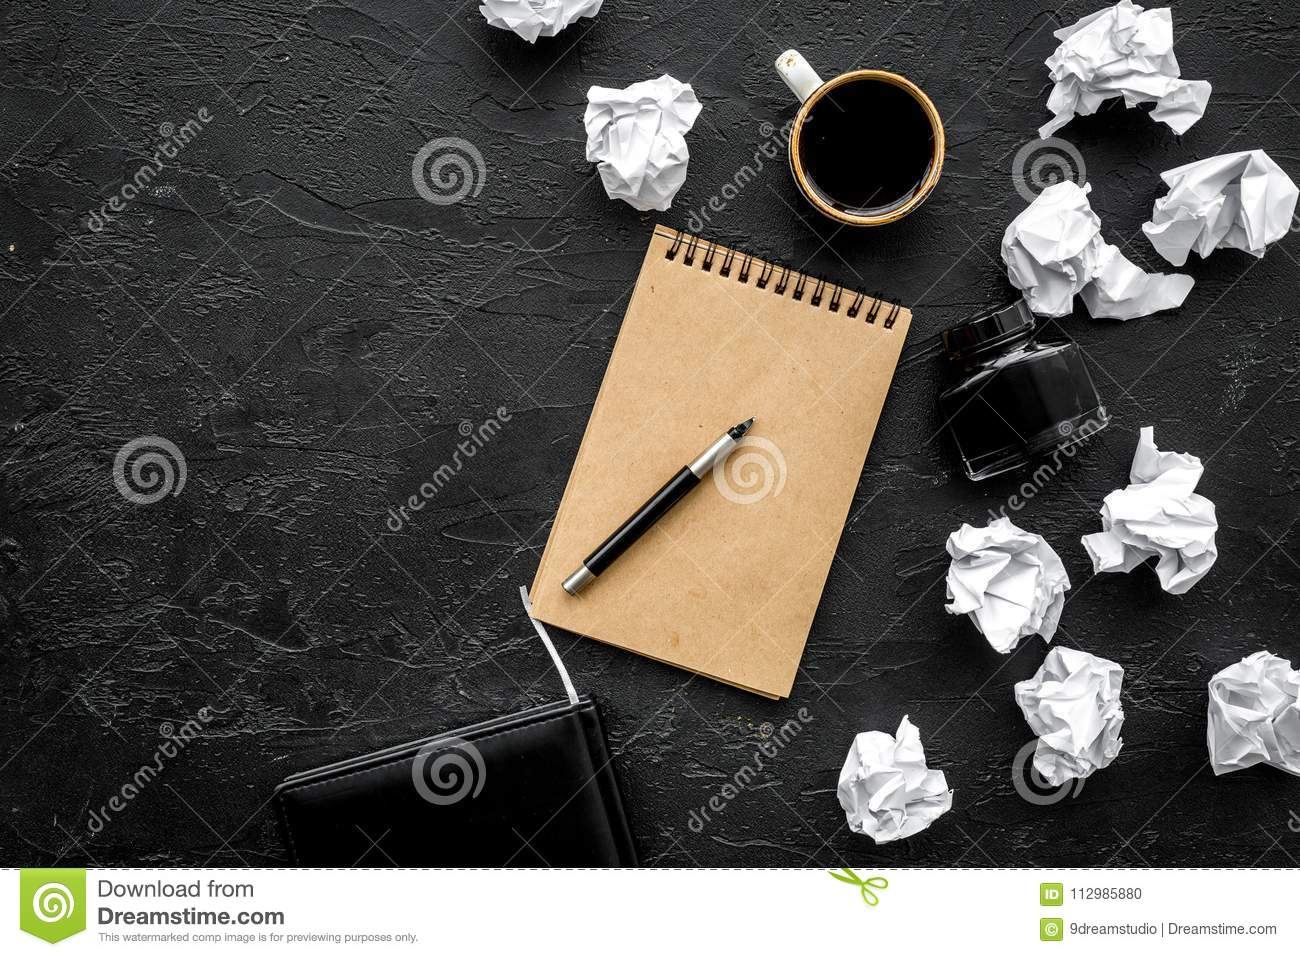 Notebook, ink, dip pen, coffee for writer workplace set on black office background top view mock-up